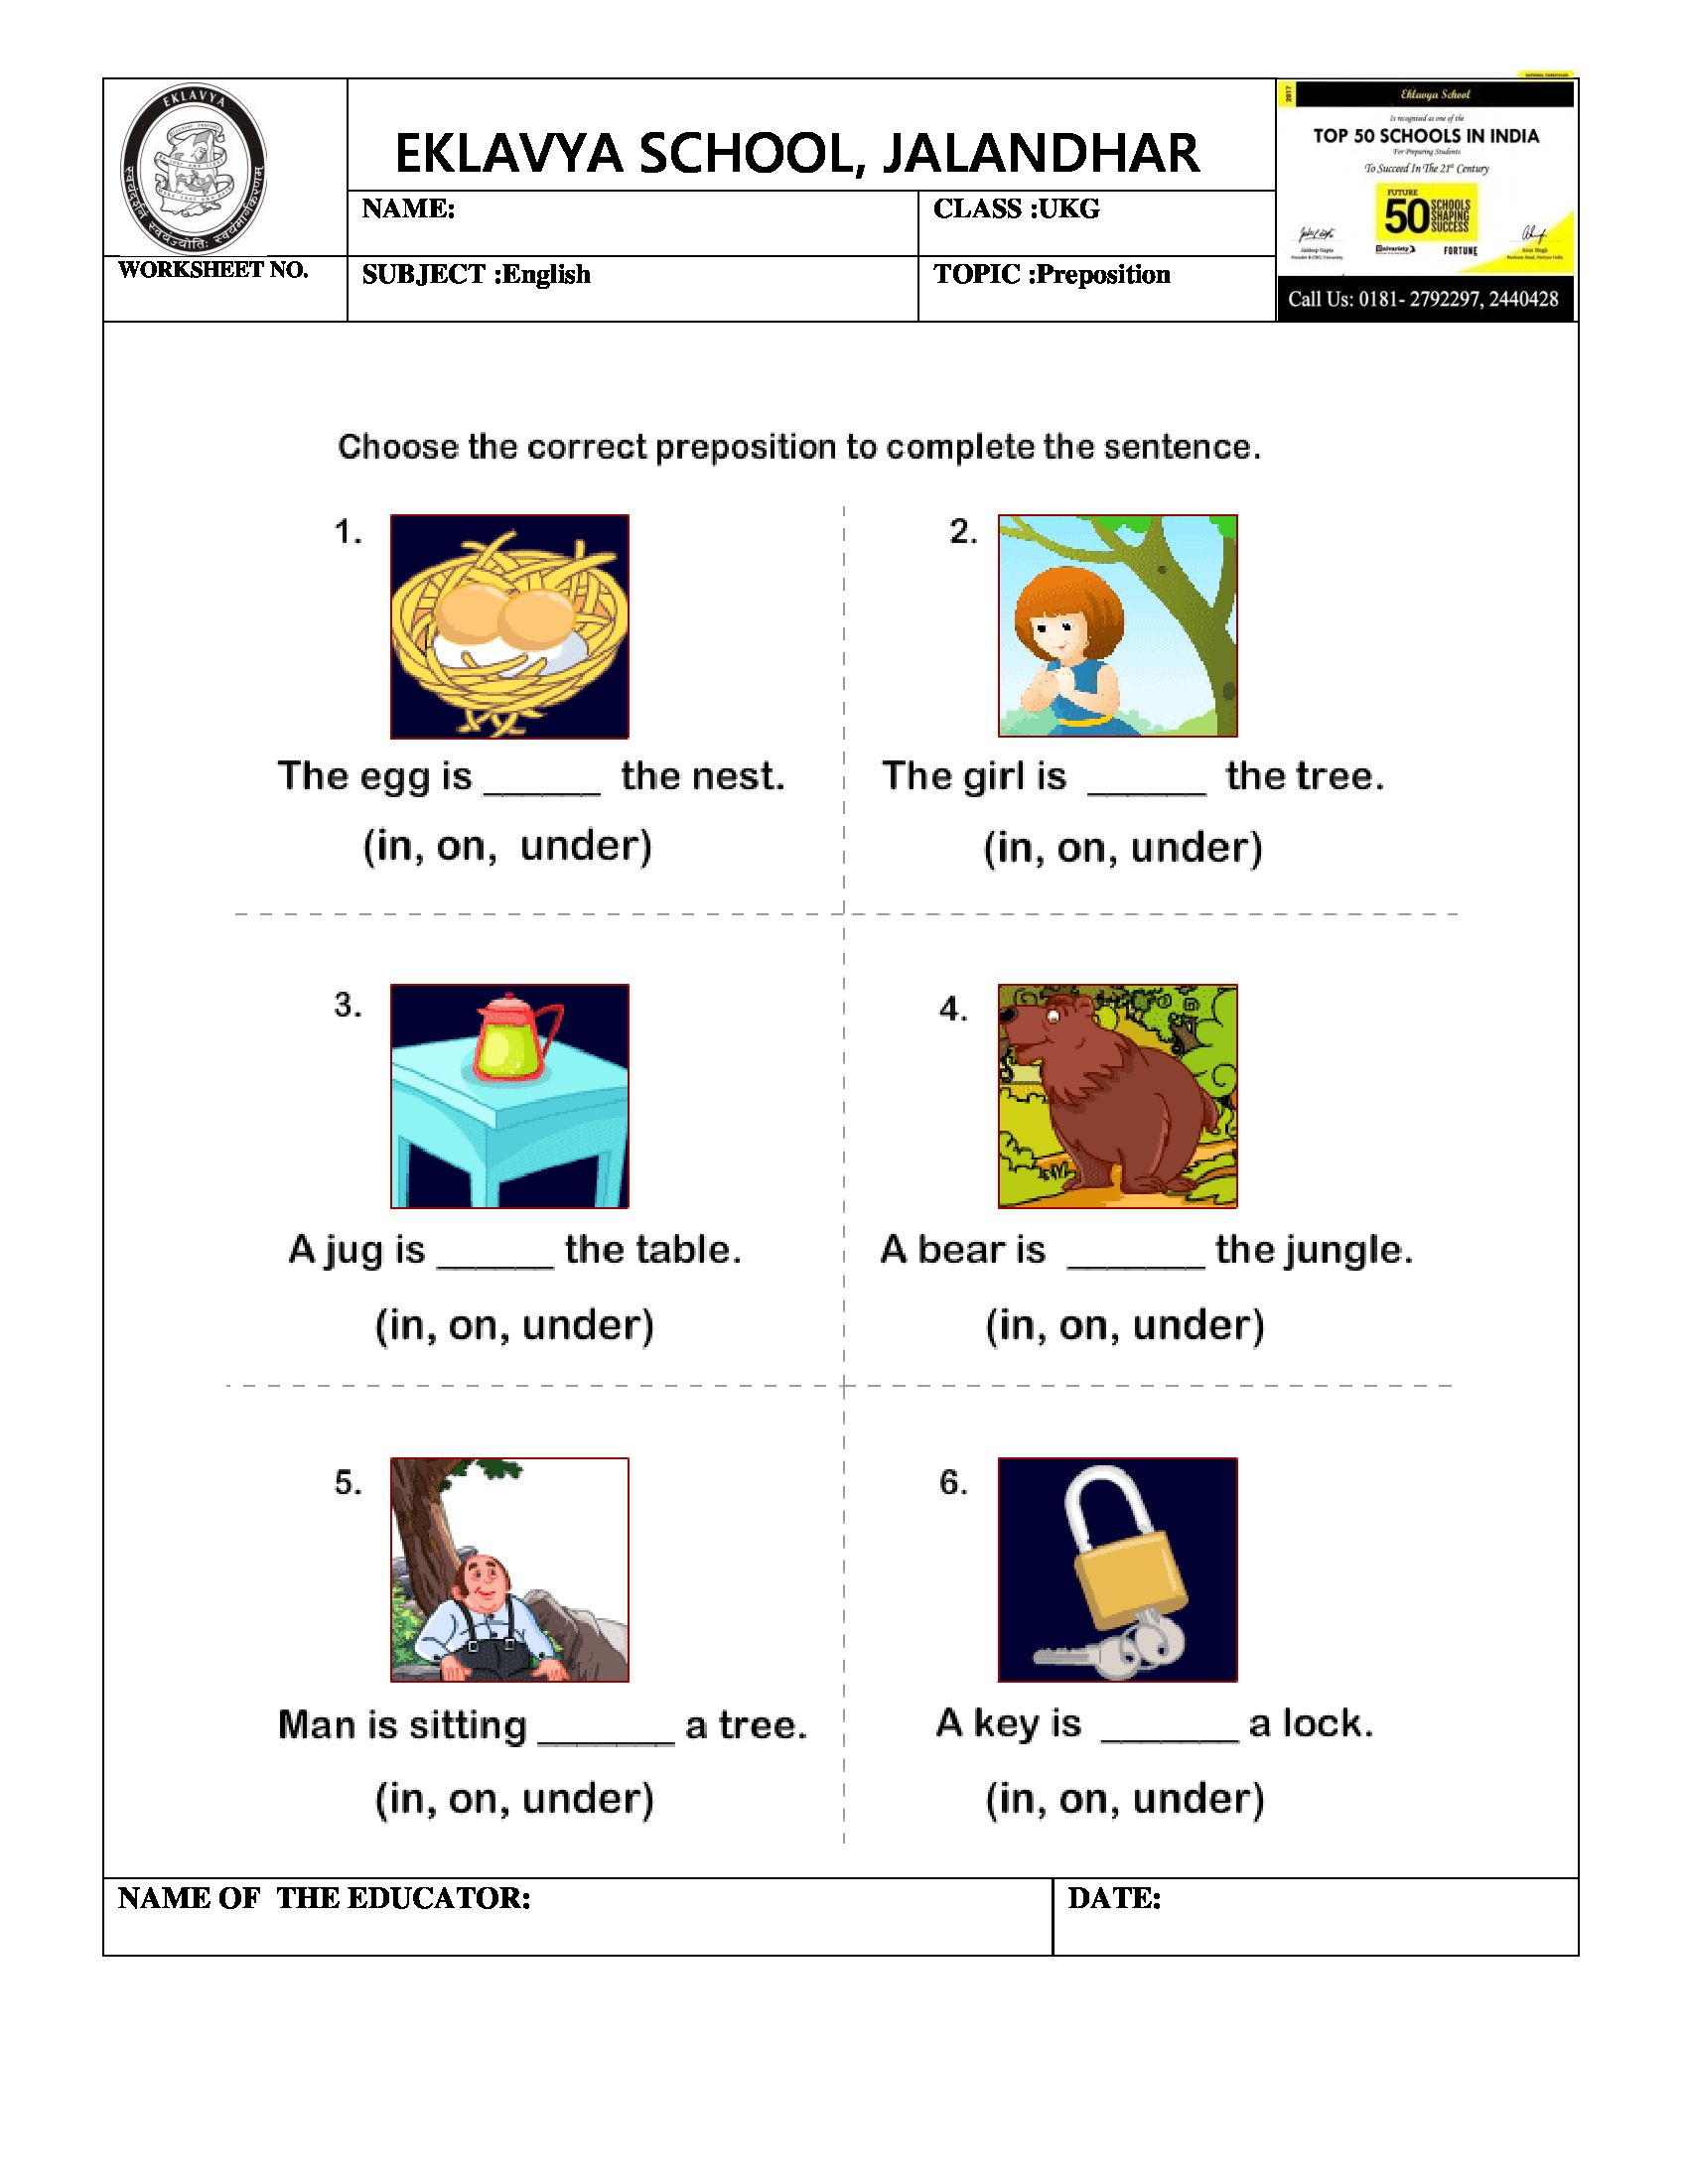 Worksheet On Preposition